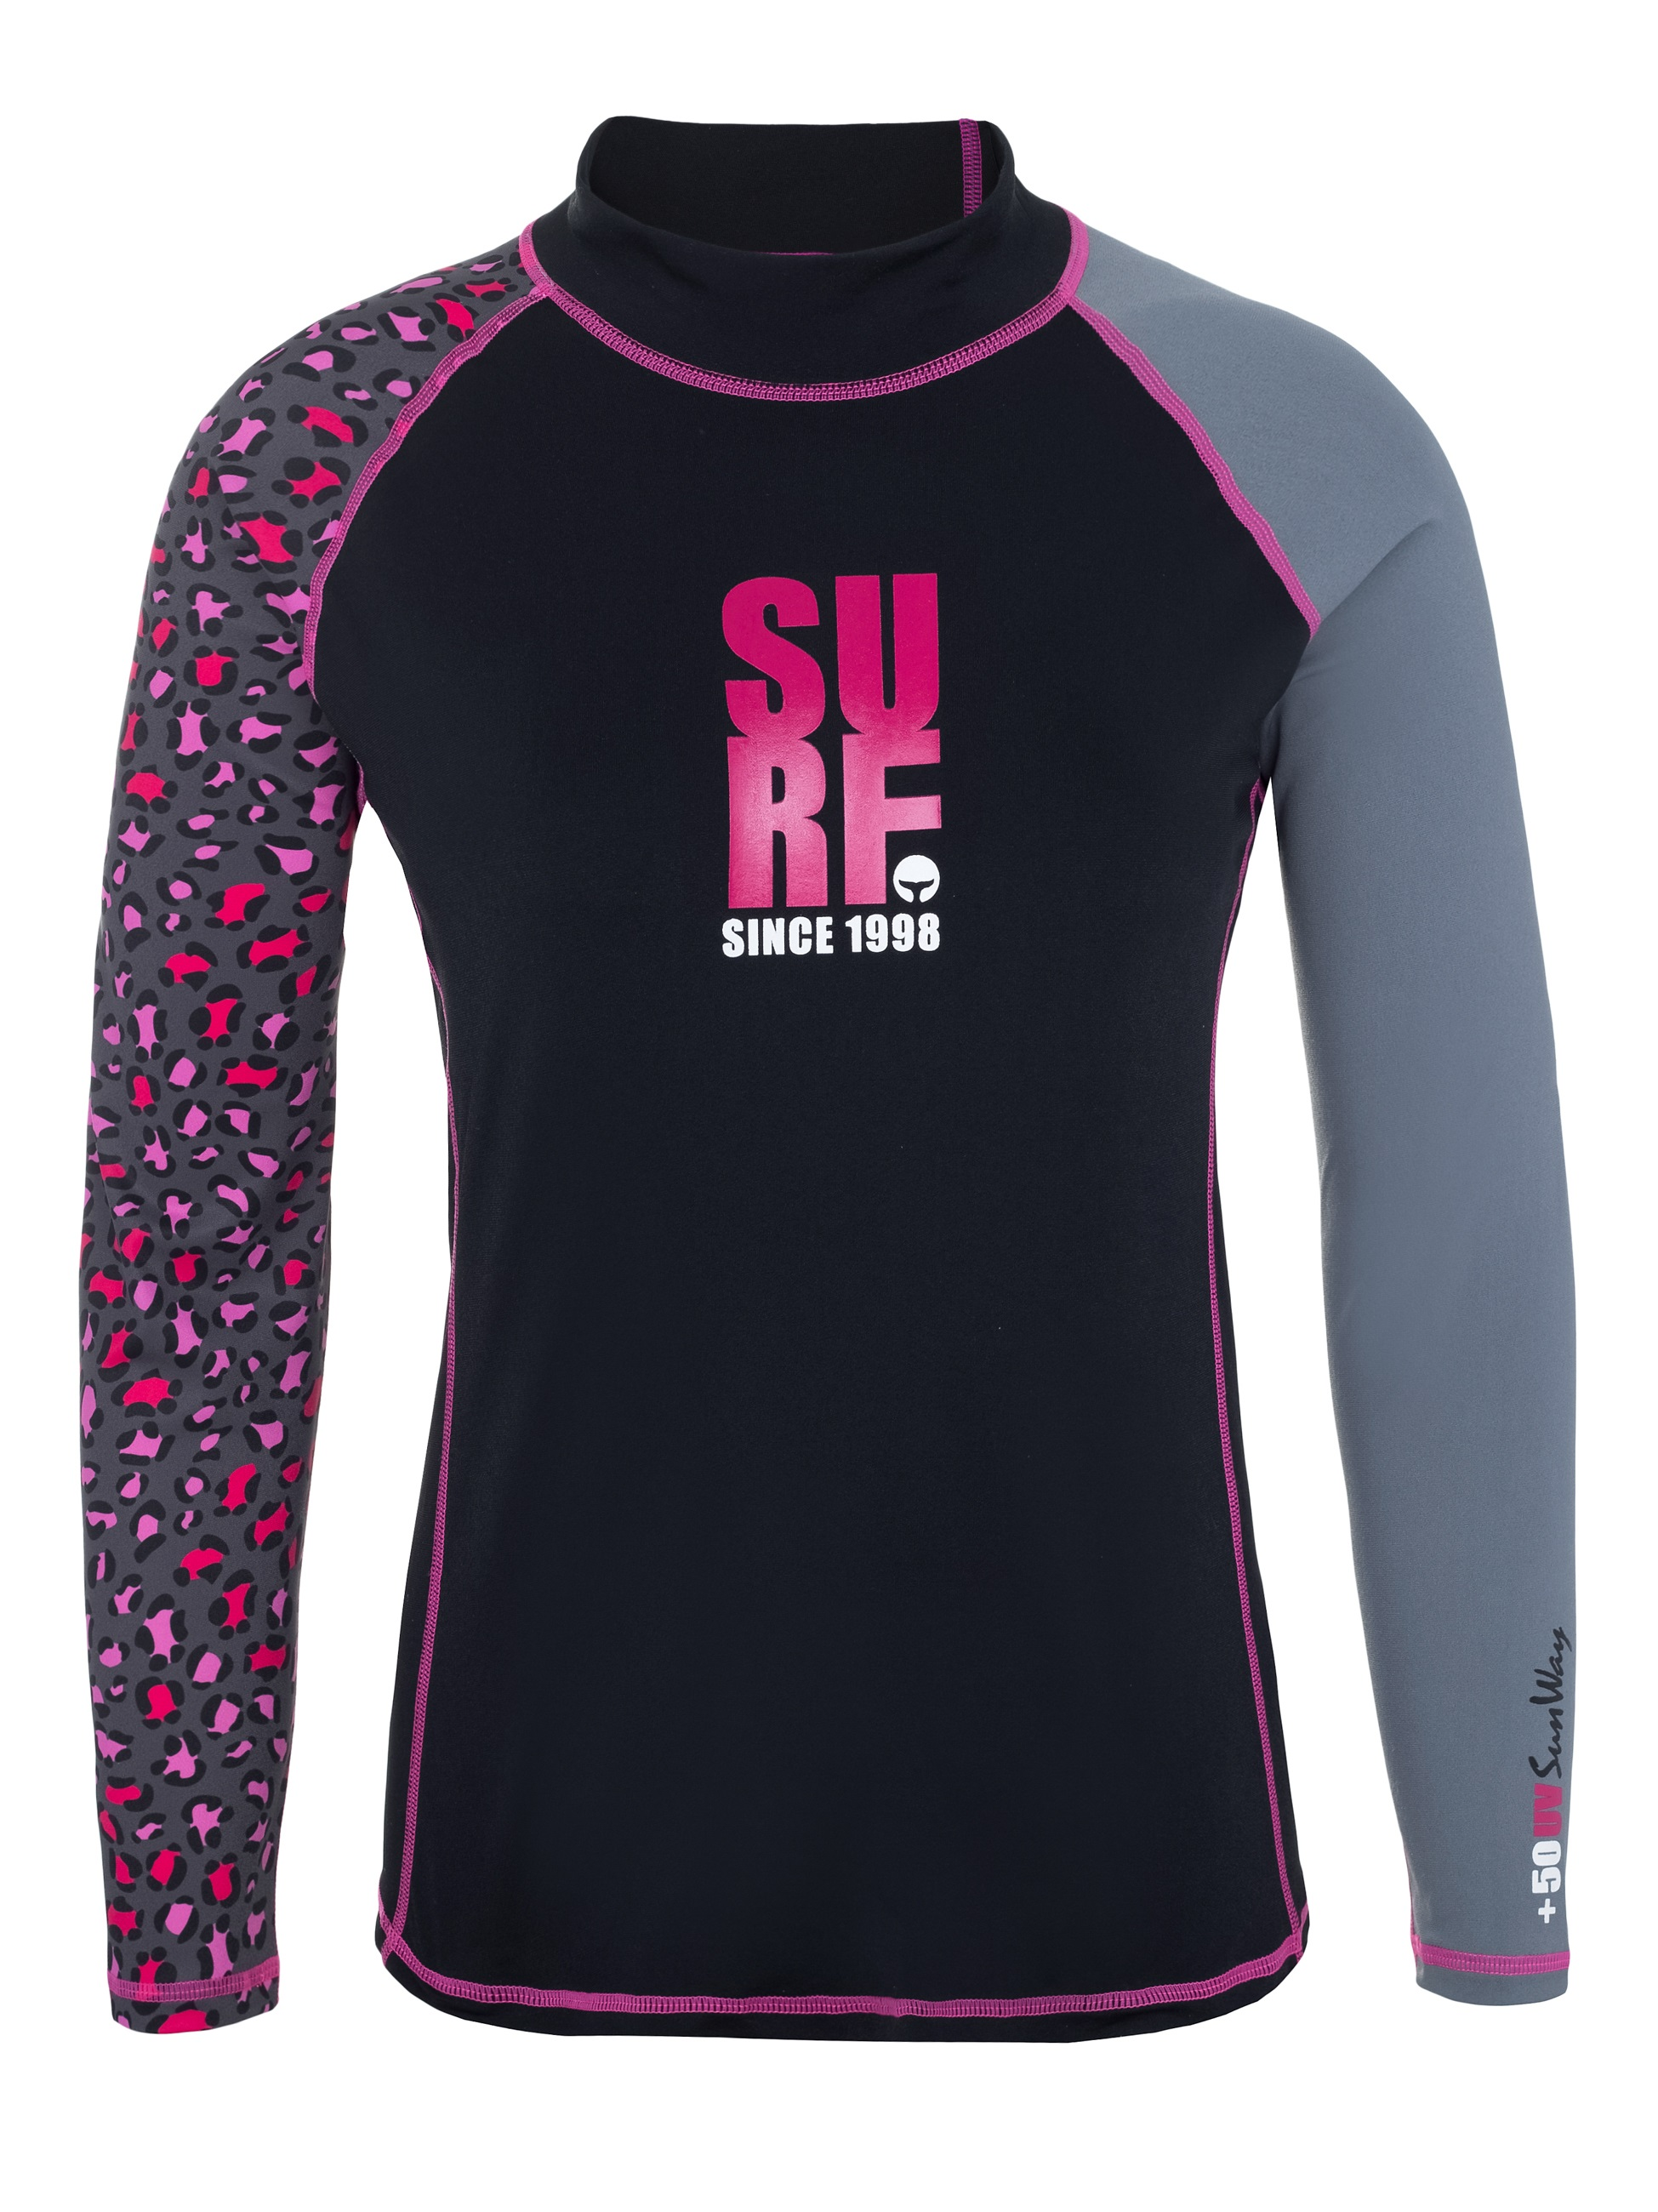 Long sleeves UV Rash guard shirt for women